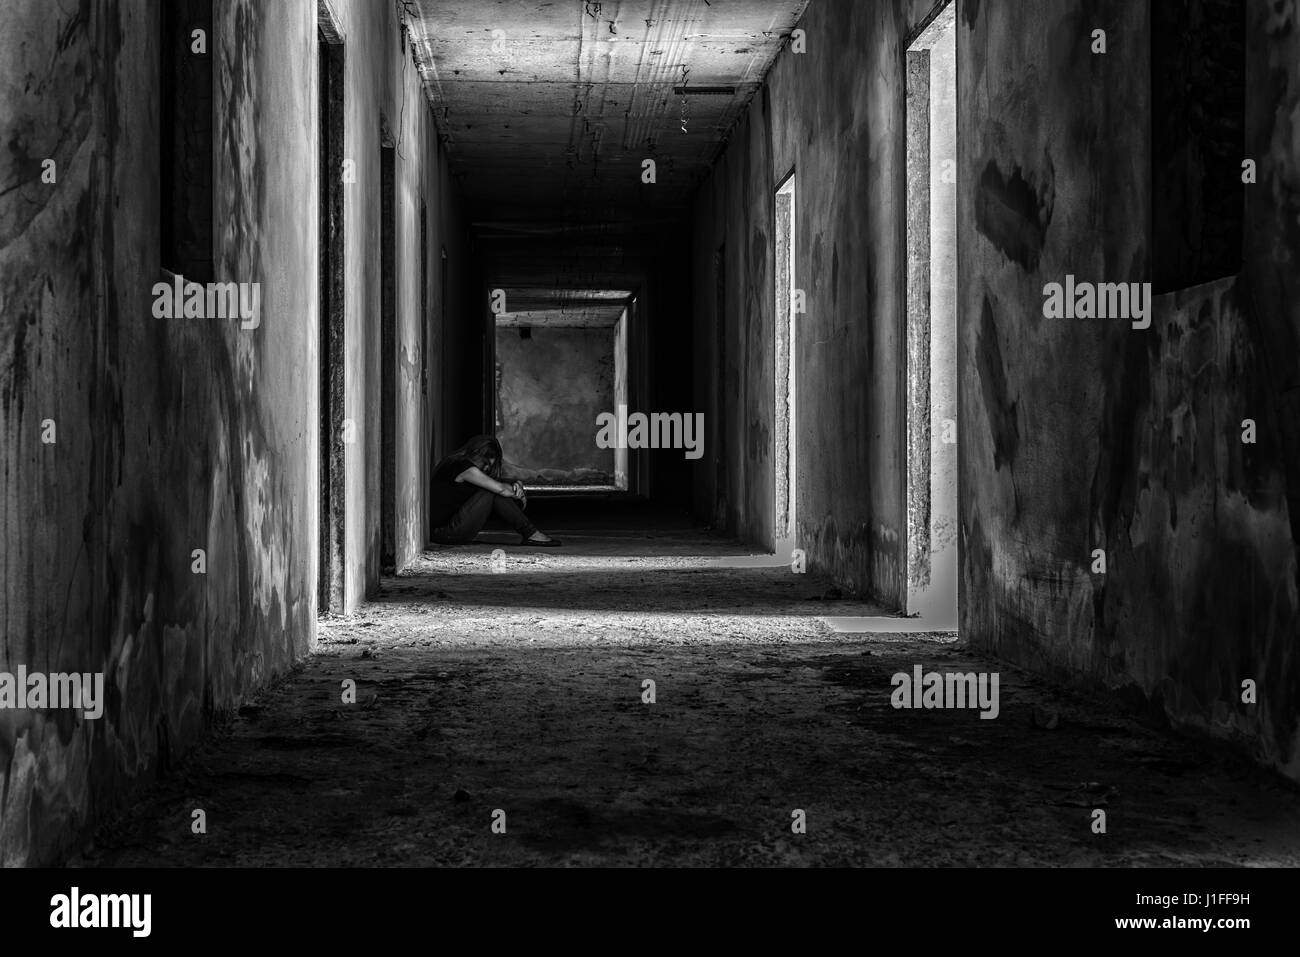 depressed woman sitting on walkway in creepy abandoned building, darkness concept - Stock Image